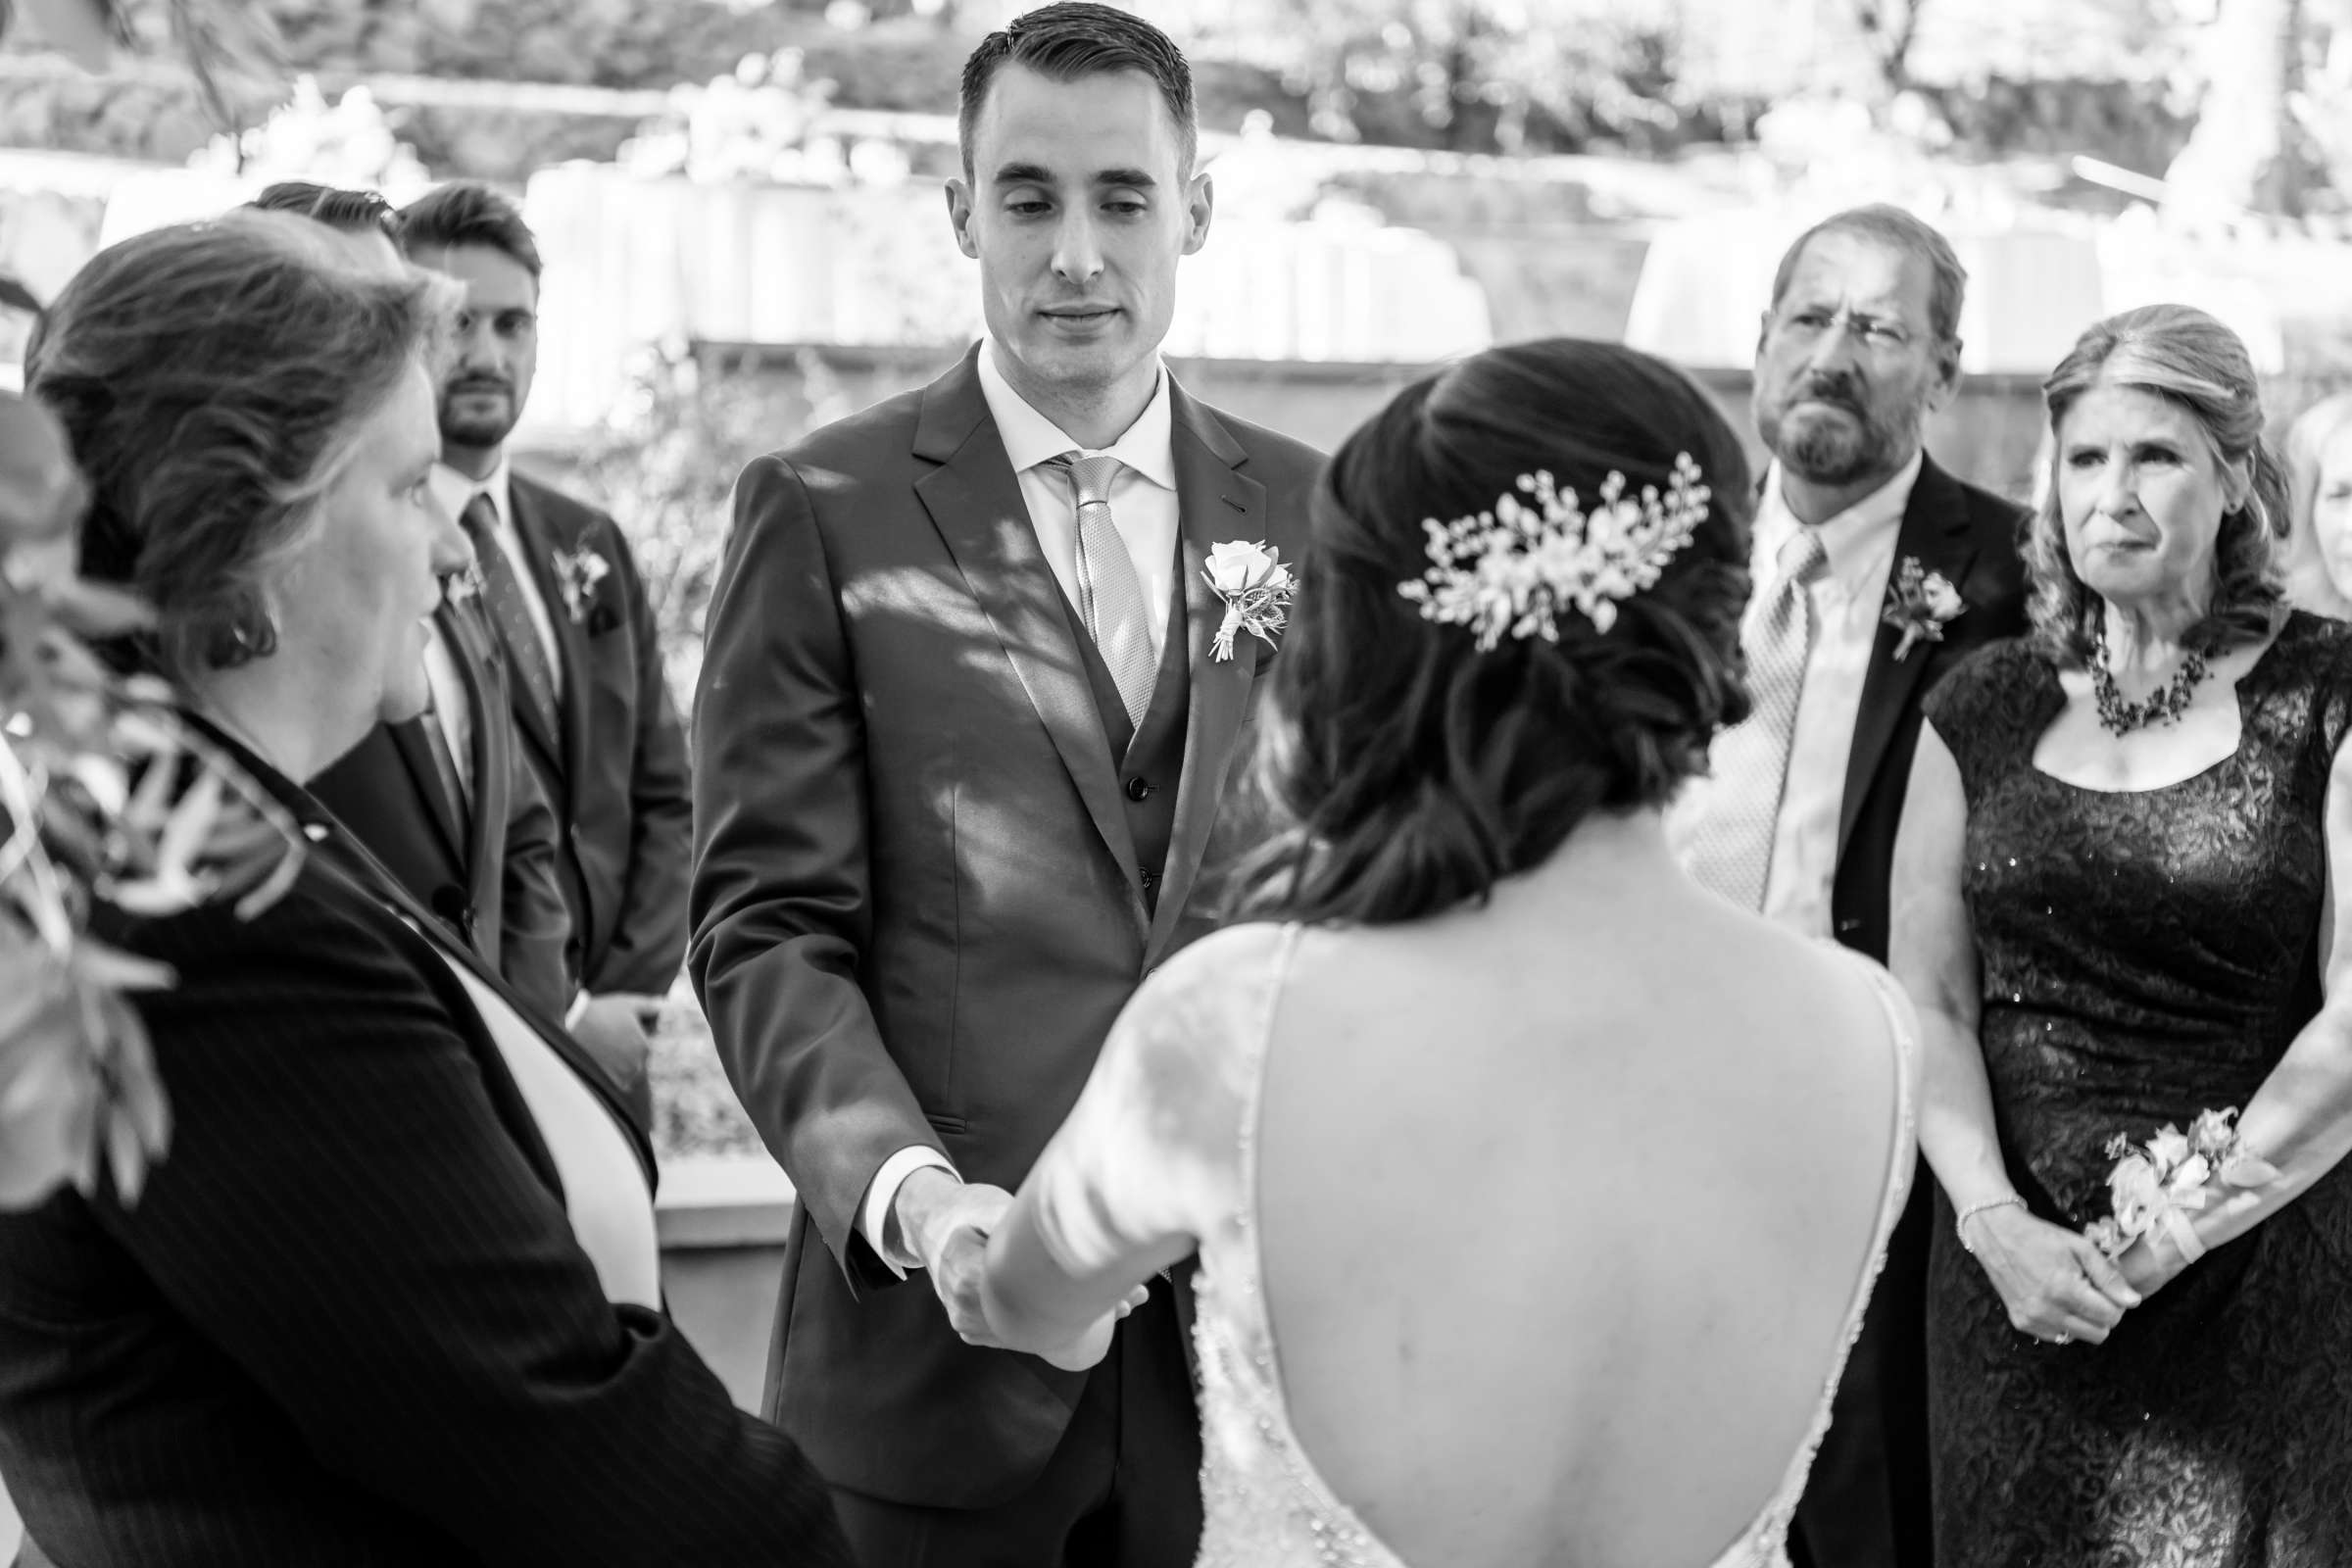 Mt Woodson Castle Wedding coordinated by I Do Weddings, Aya and Jared Wedding Photo #486935 by True Photography